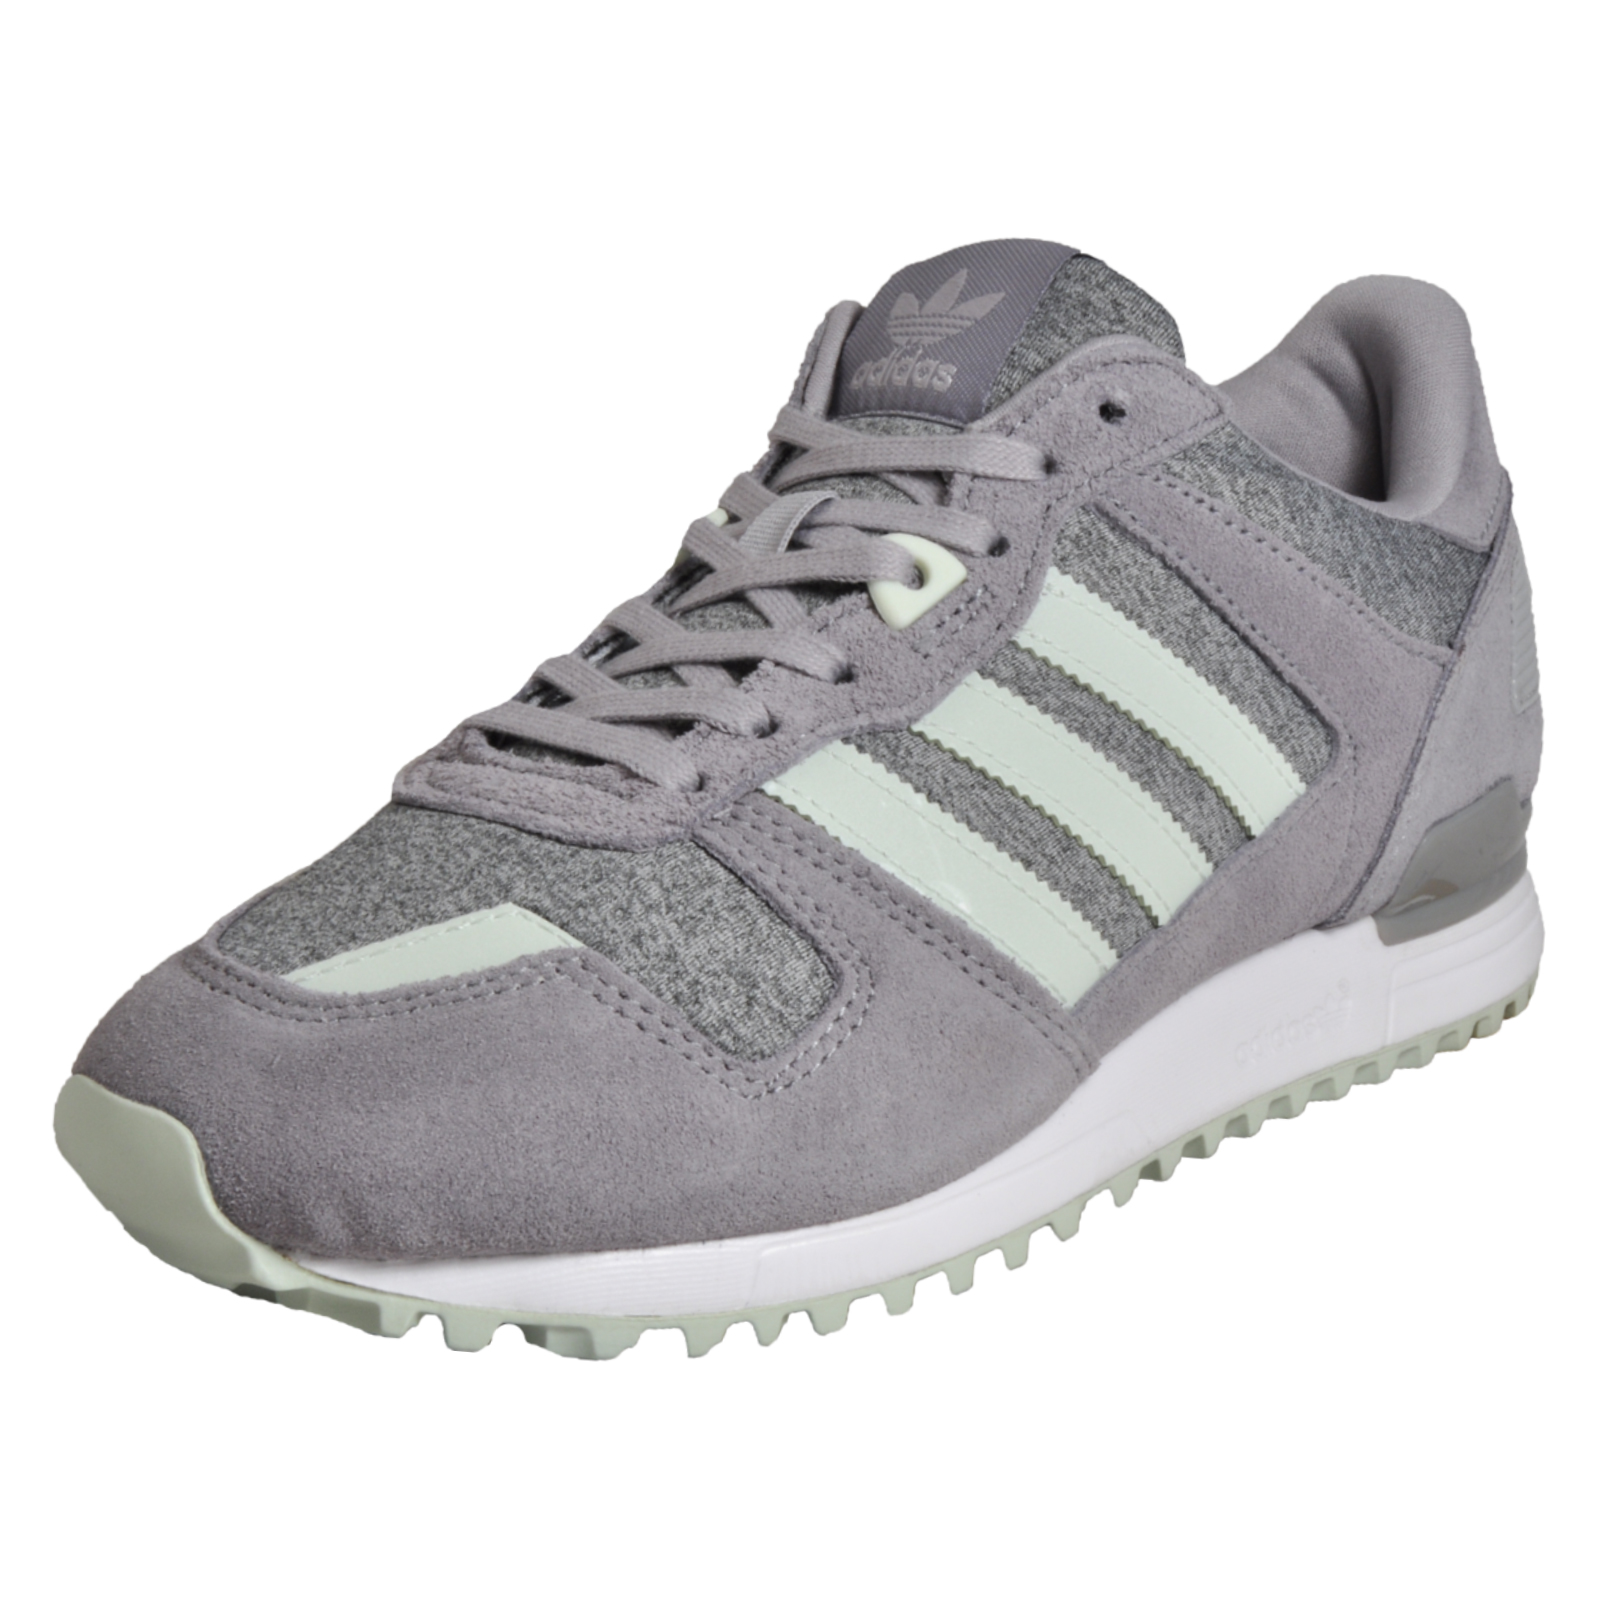 detailed look 0e650 a3657 Adidas Originals ZX 700 Womens Classic Casual Retro Running Trainers Grey